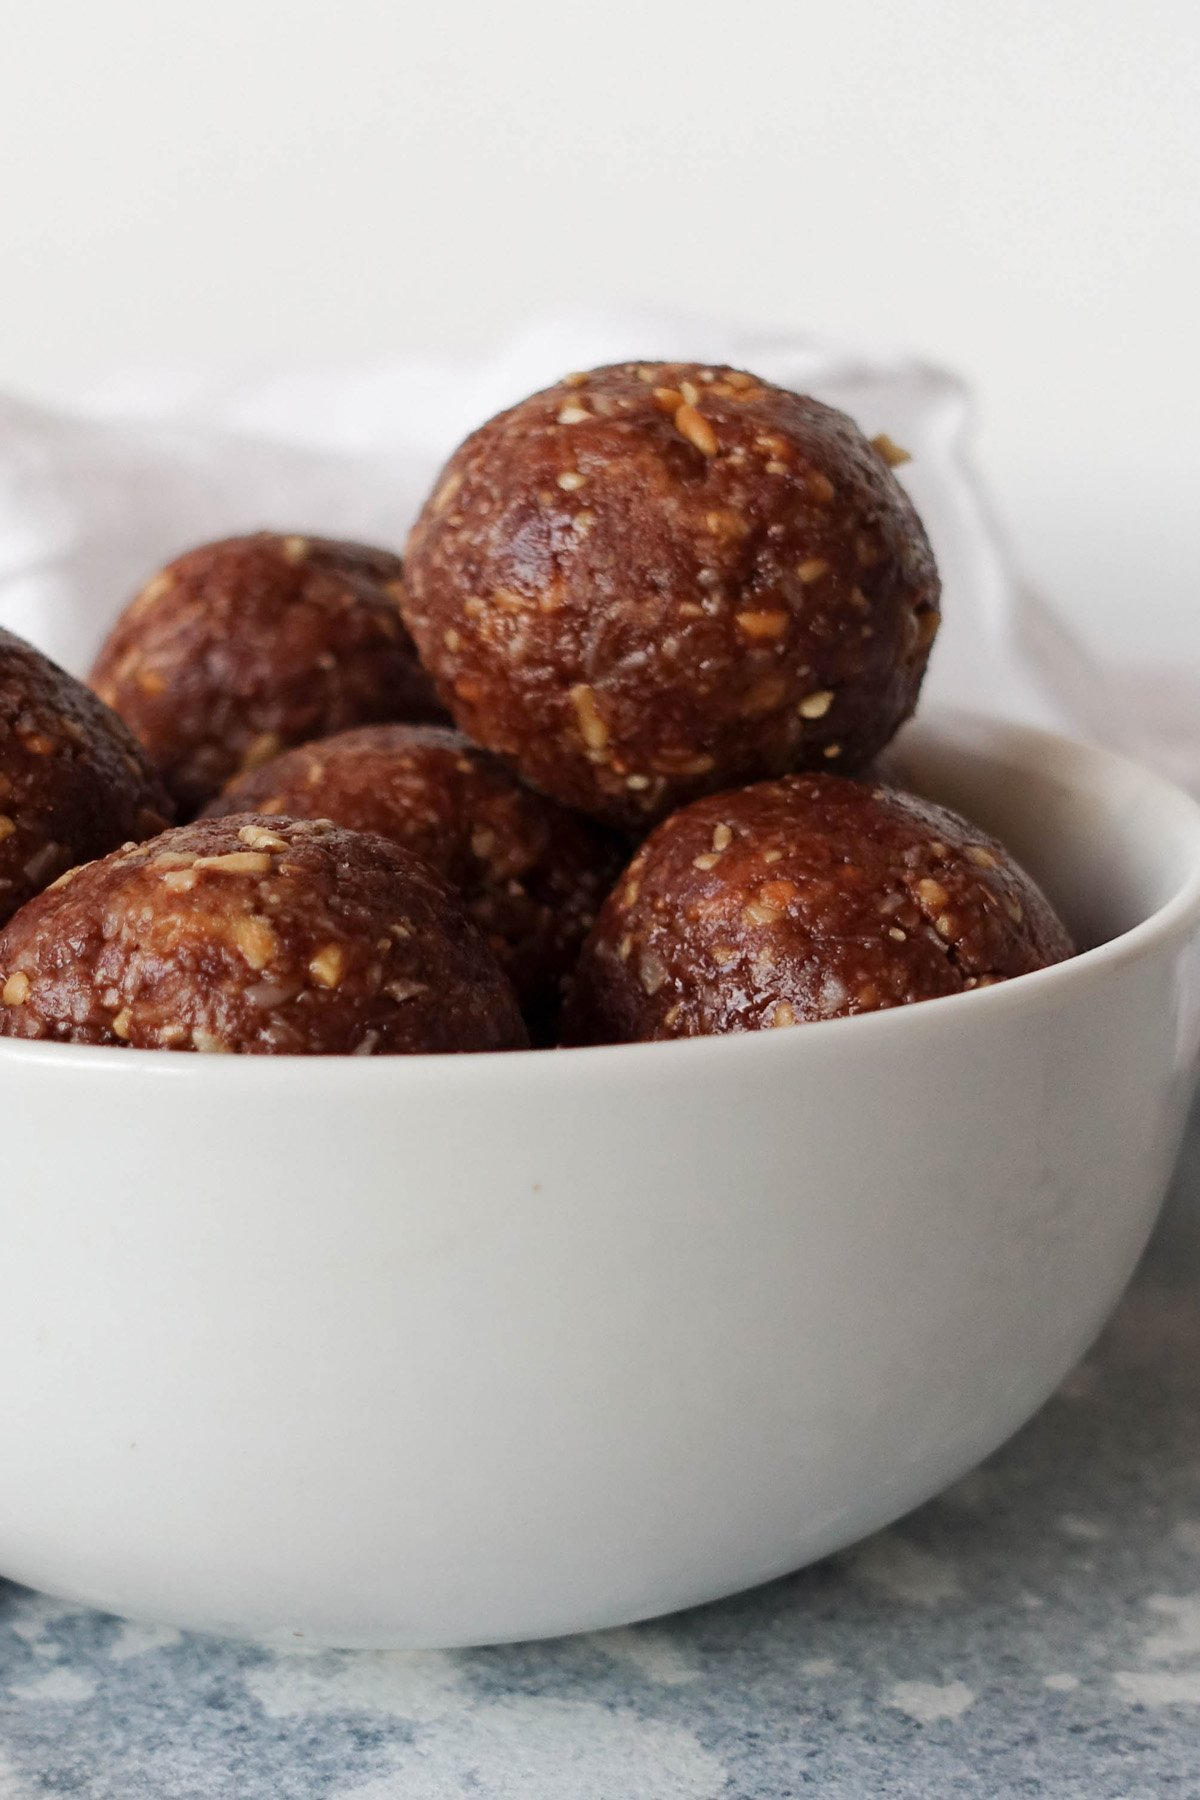 Chocolate Peanut Butter Bliss Balls - You Totally Got This - Quick & Easy Recipe